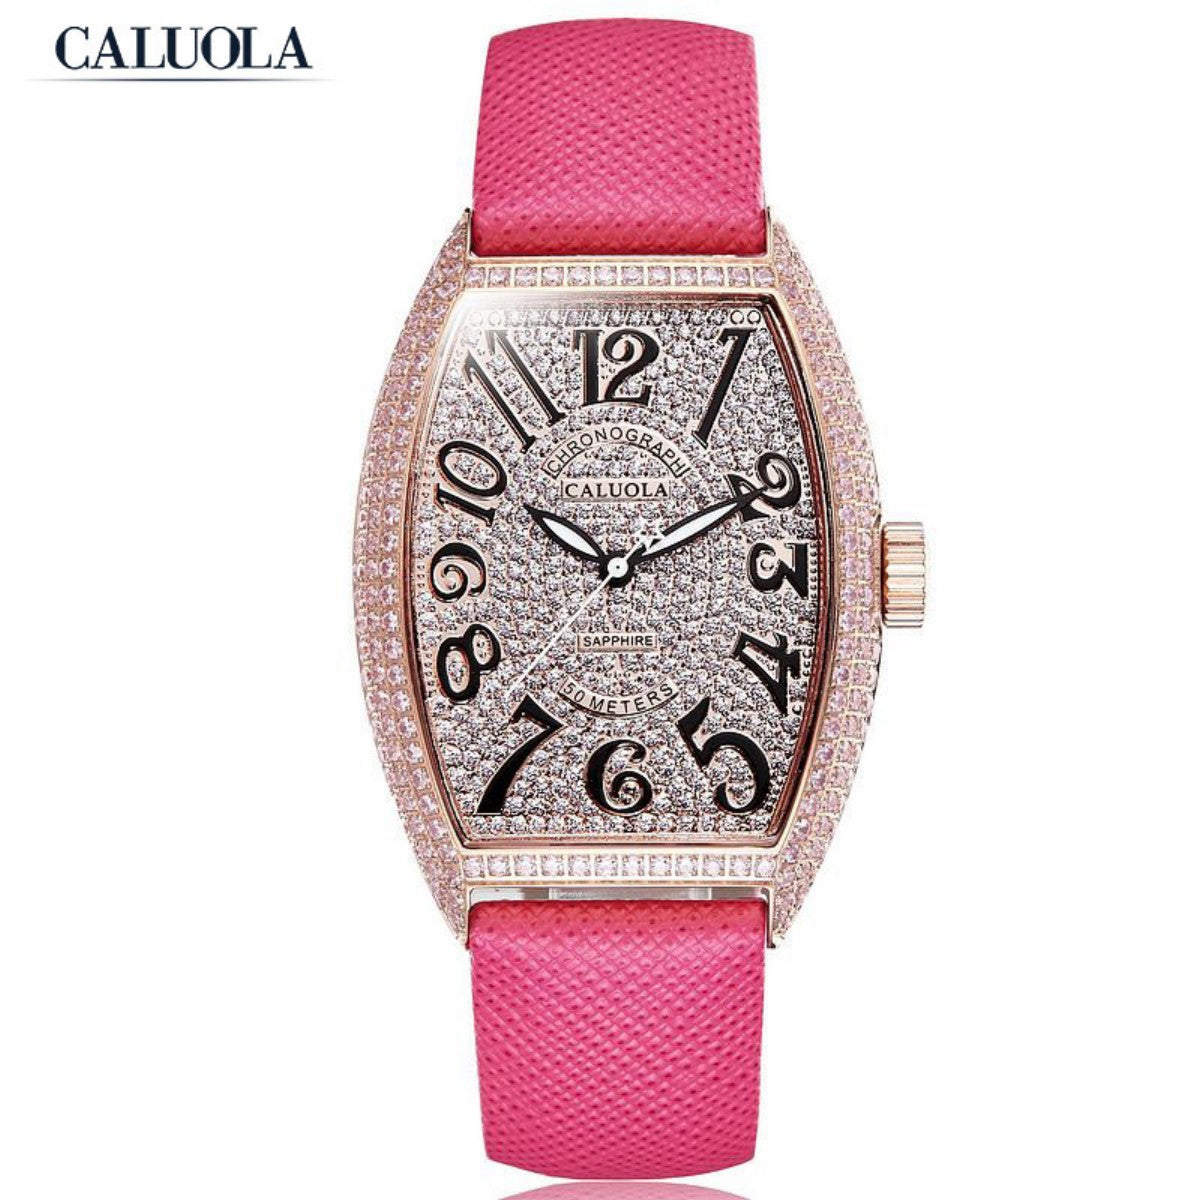 Caluola Fashion Quartz Watch Women Rose Gold Diamond Dress Watch CA1141L1